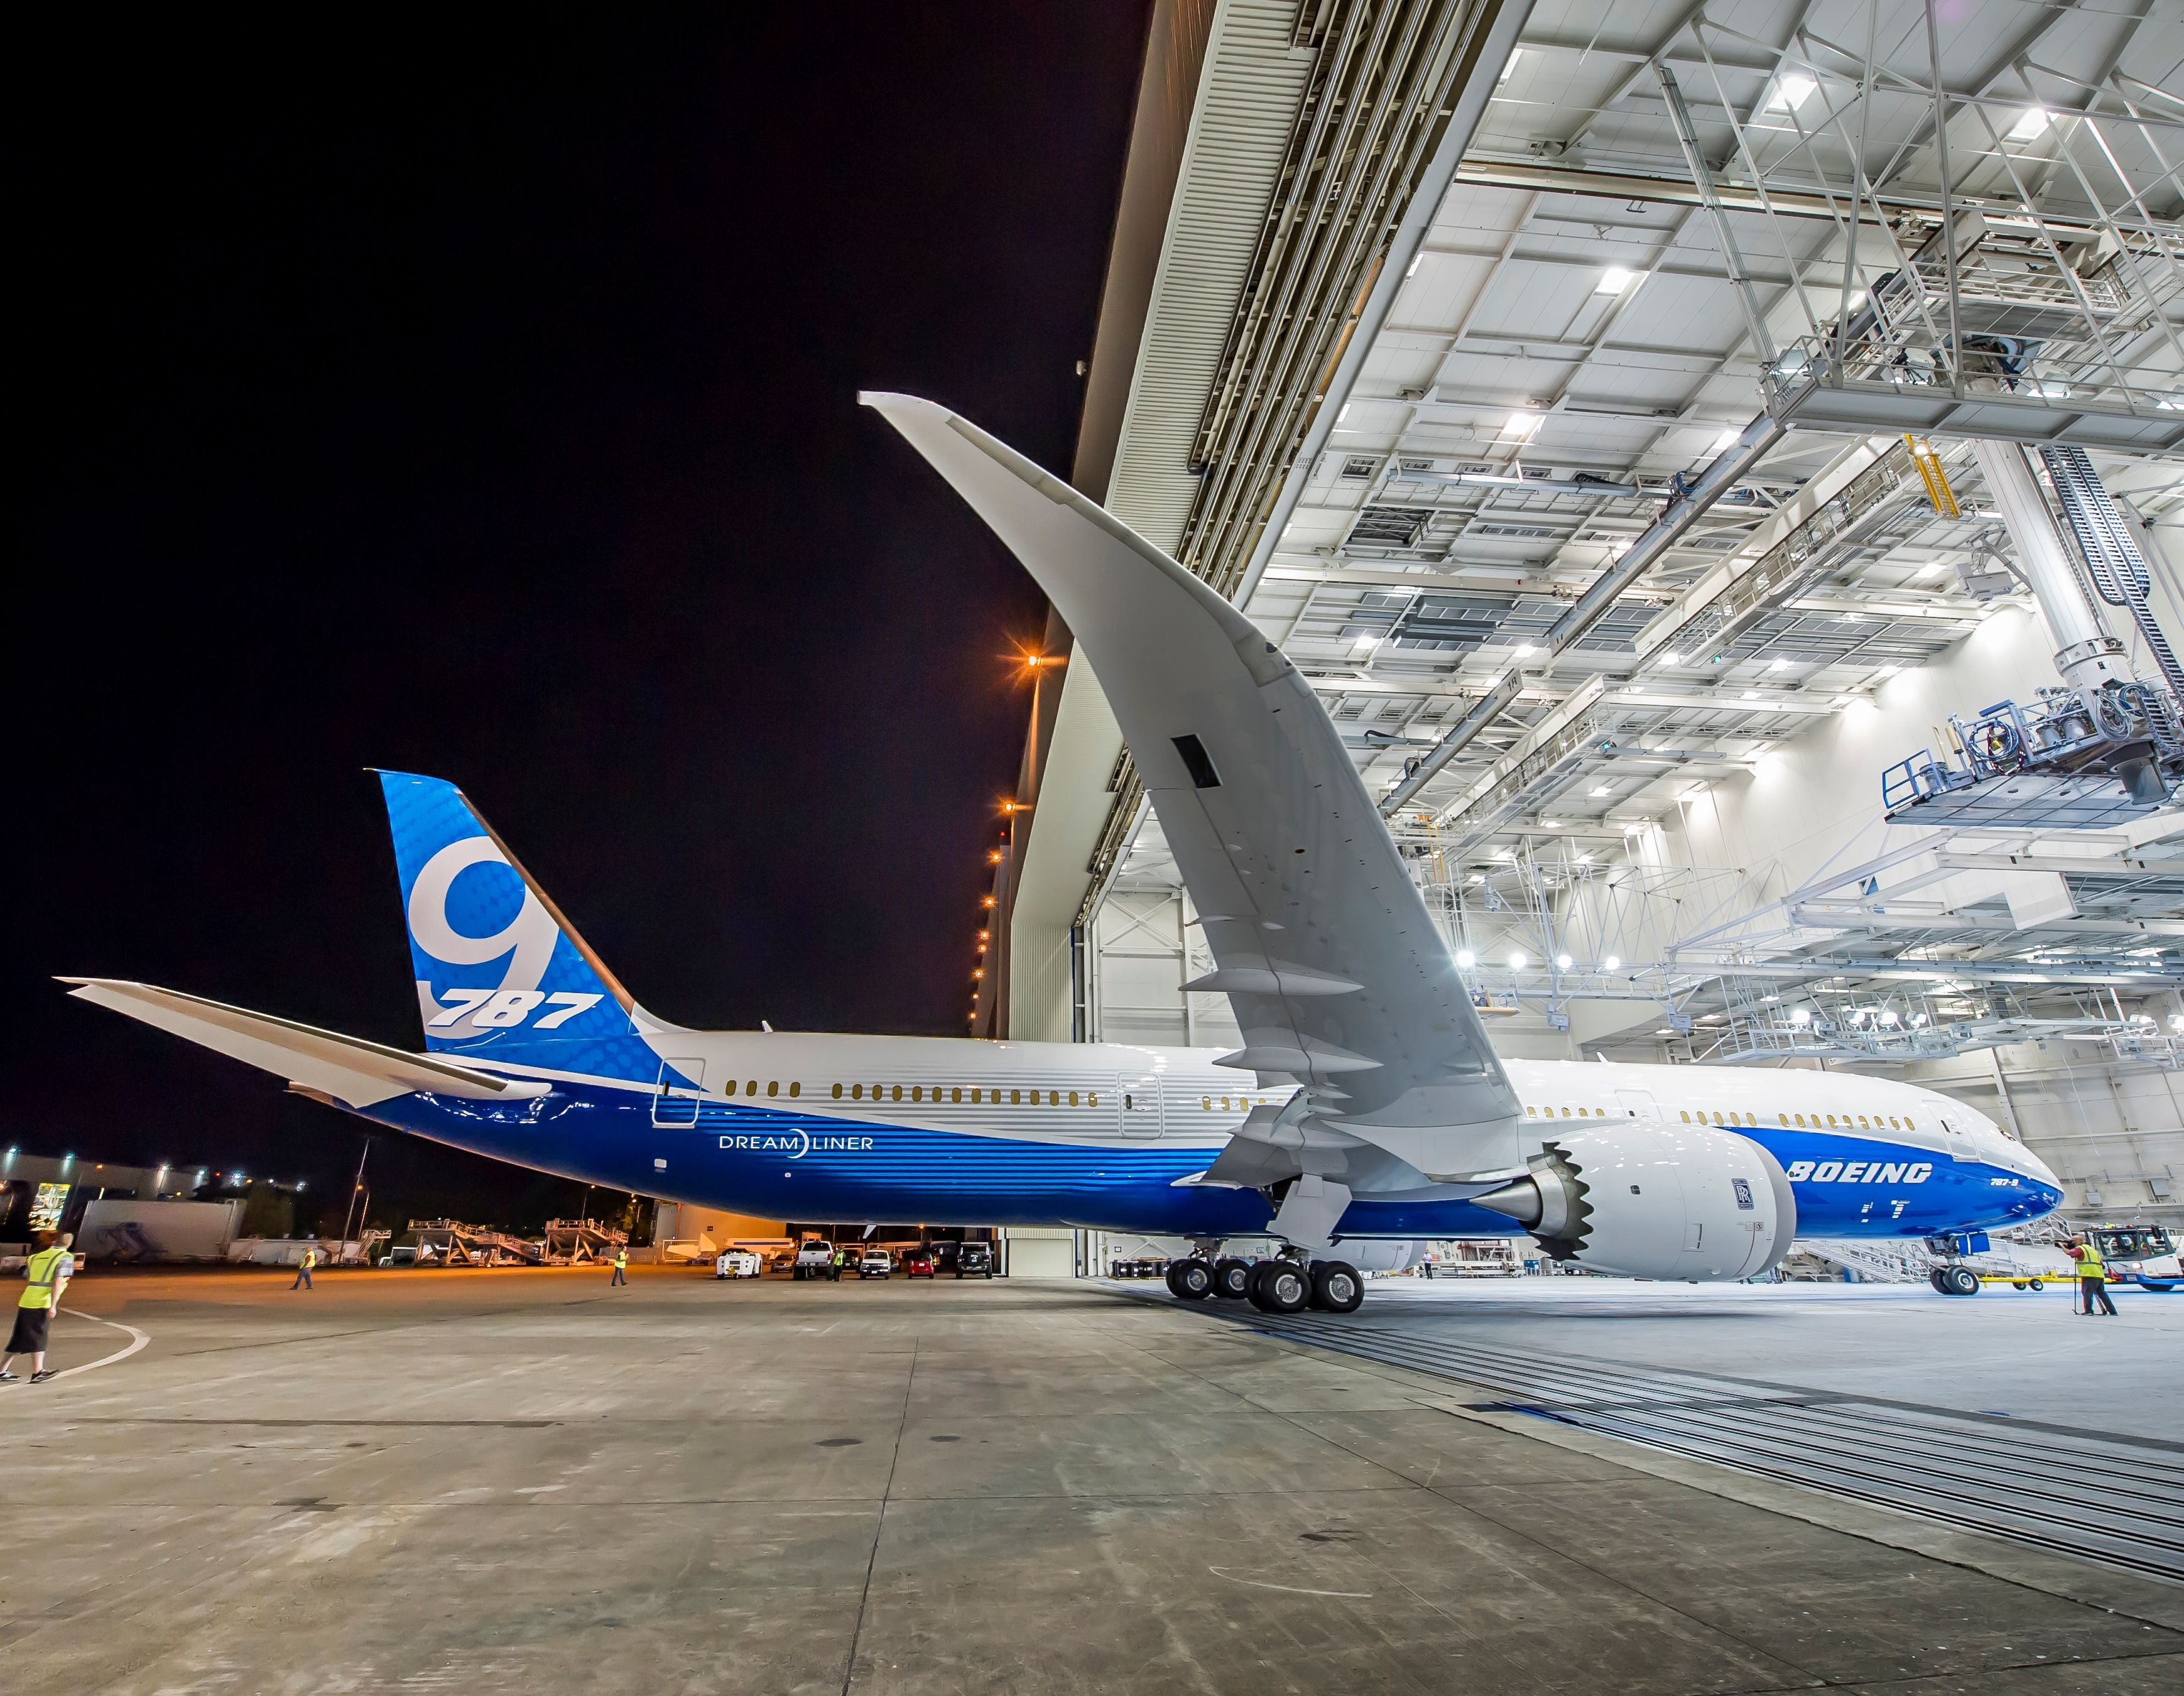 Free Fine B787 Images on your Android